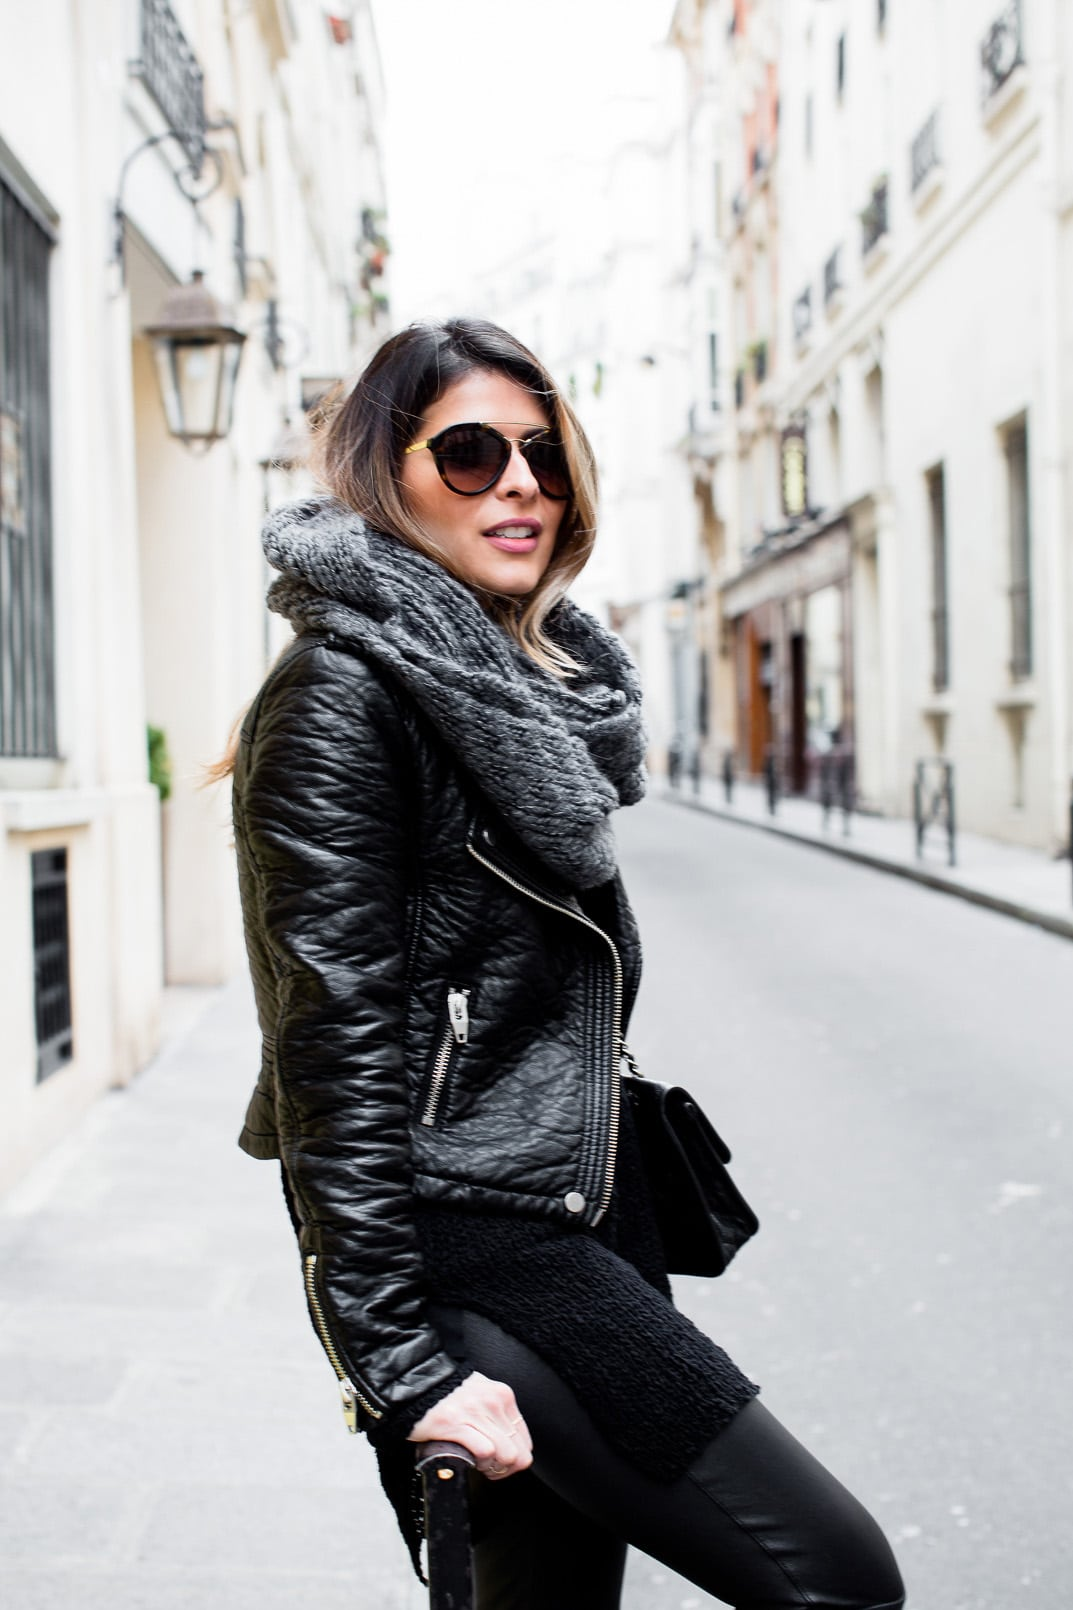 Pam Hetlinger wearing Leather Leggings, Faux-leather jacket, low-heeled booties, chunky scarf, and prada sunglasses. Paris. Travel Look.